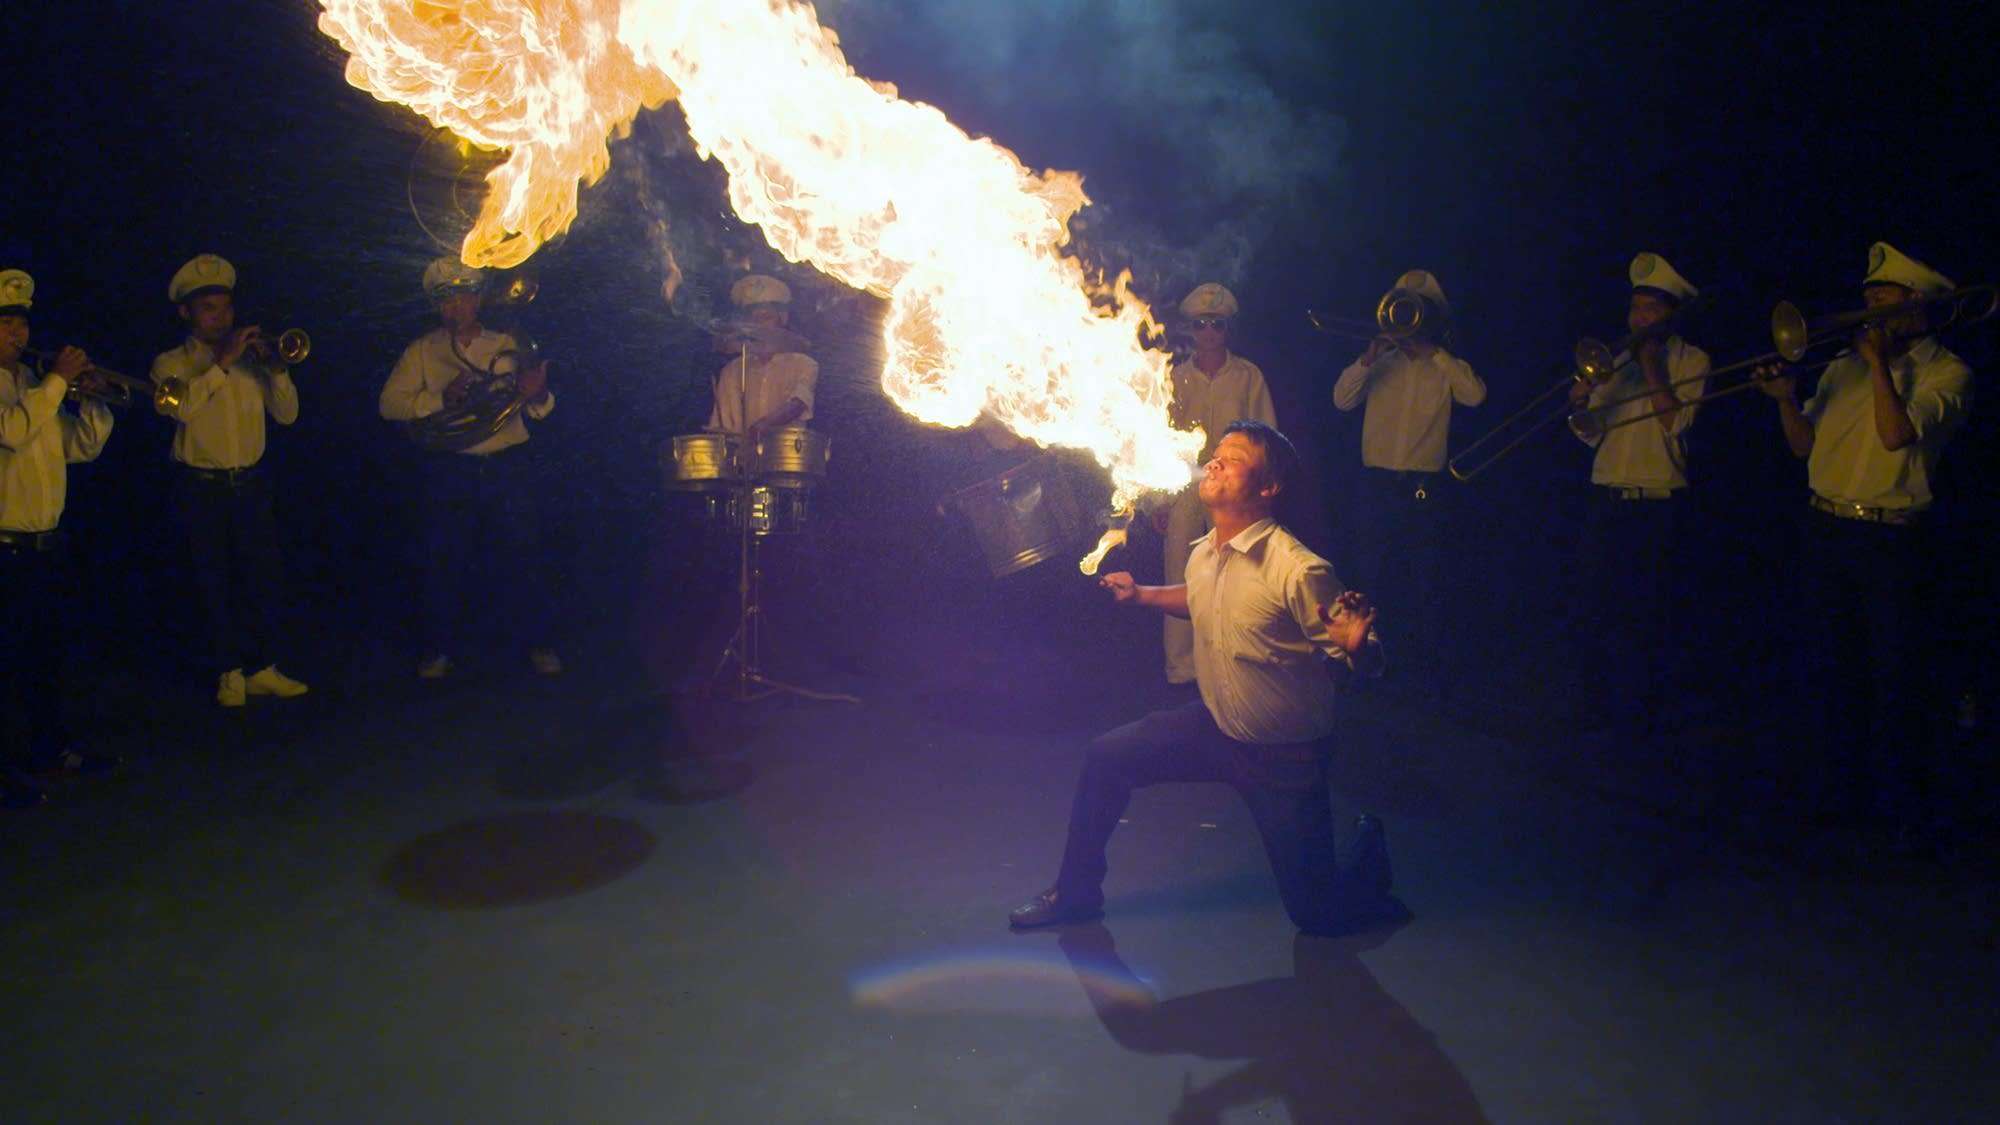 South Vietnamese funerals often include street performers like fire eaters.